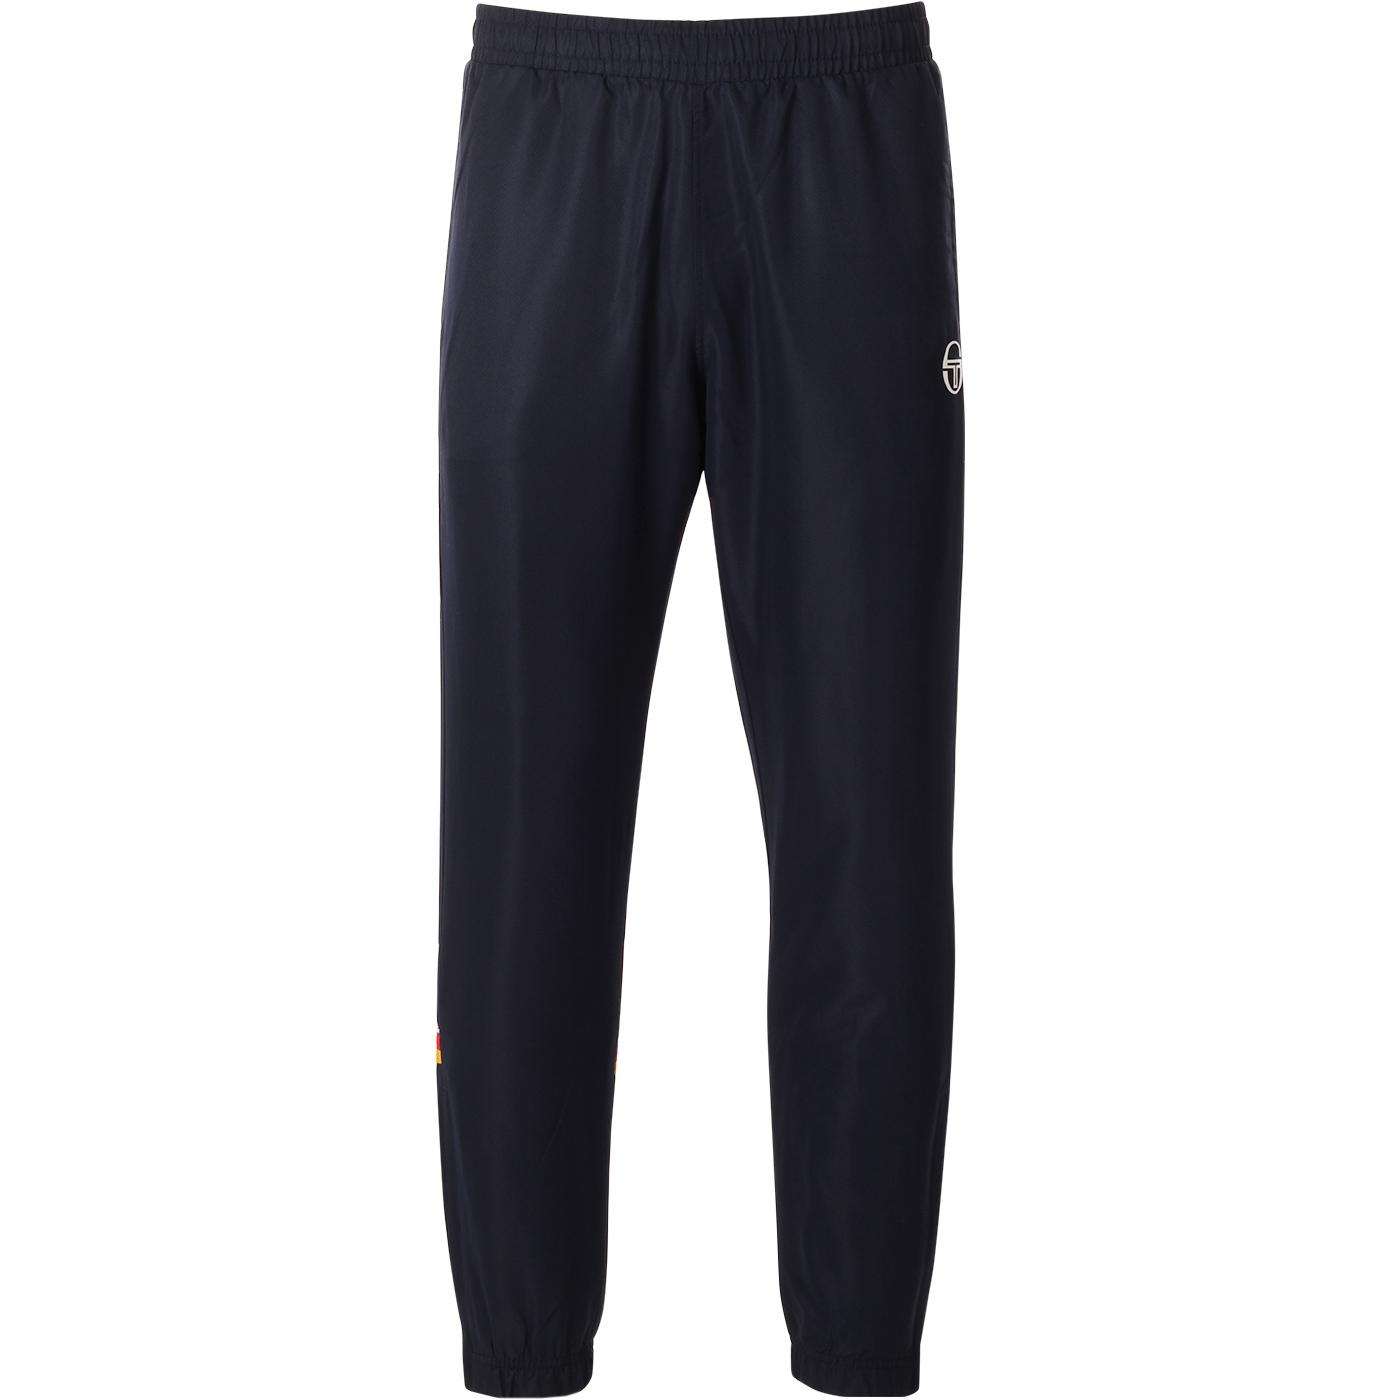 Cryo SERGIO TACCHINI Retro Track Pants NAVY/YELLOW